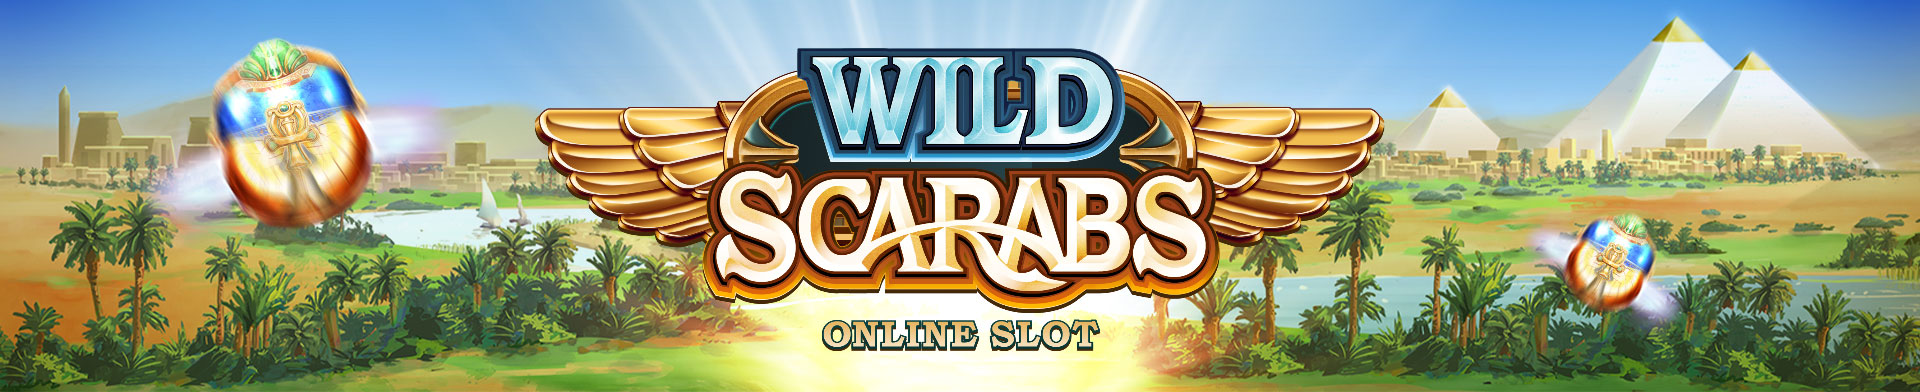 Wild scarabs banners